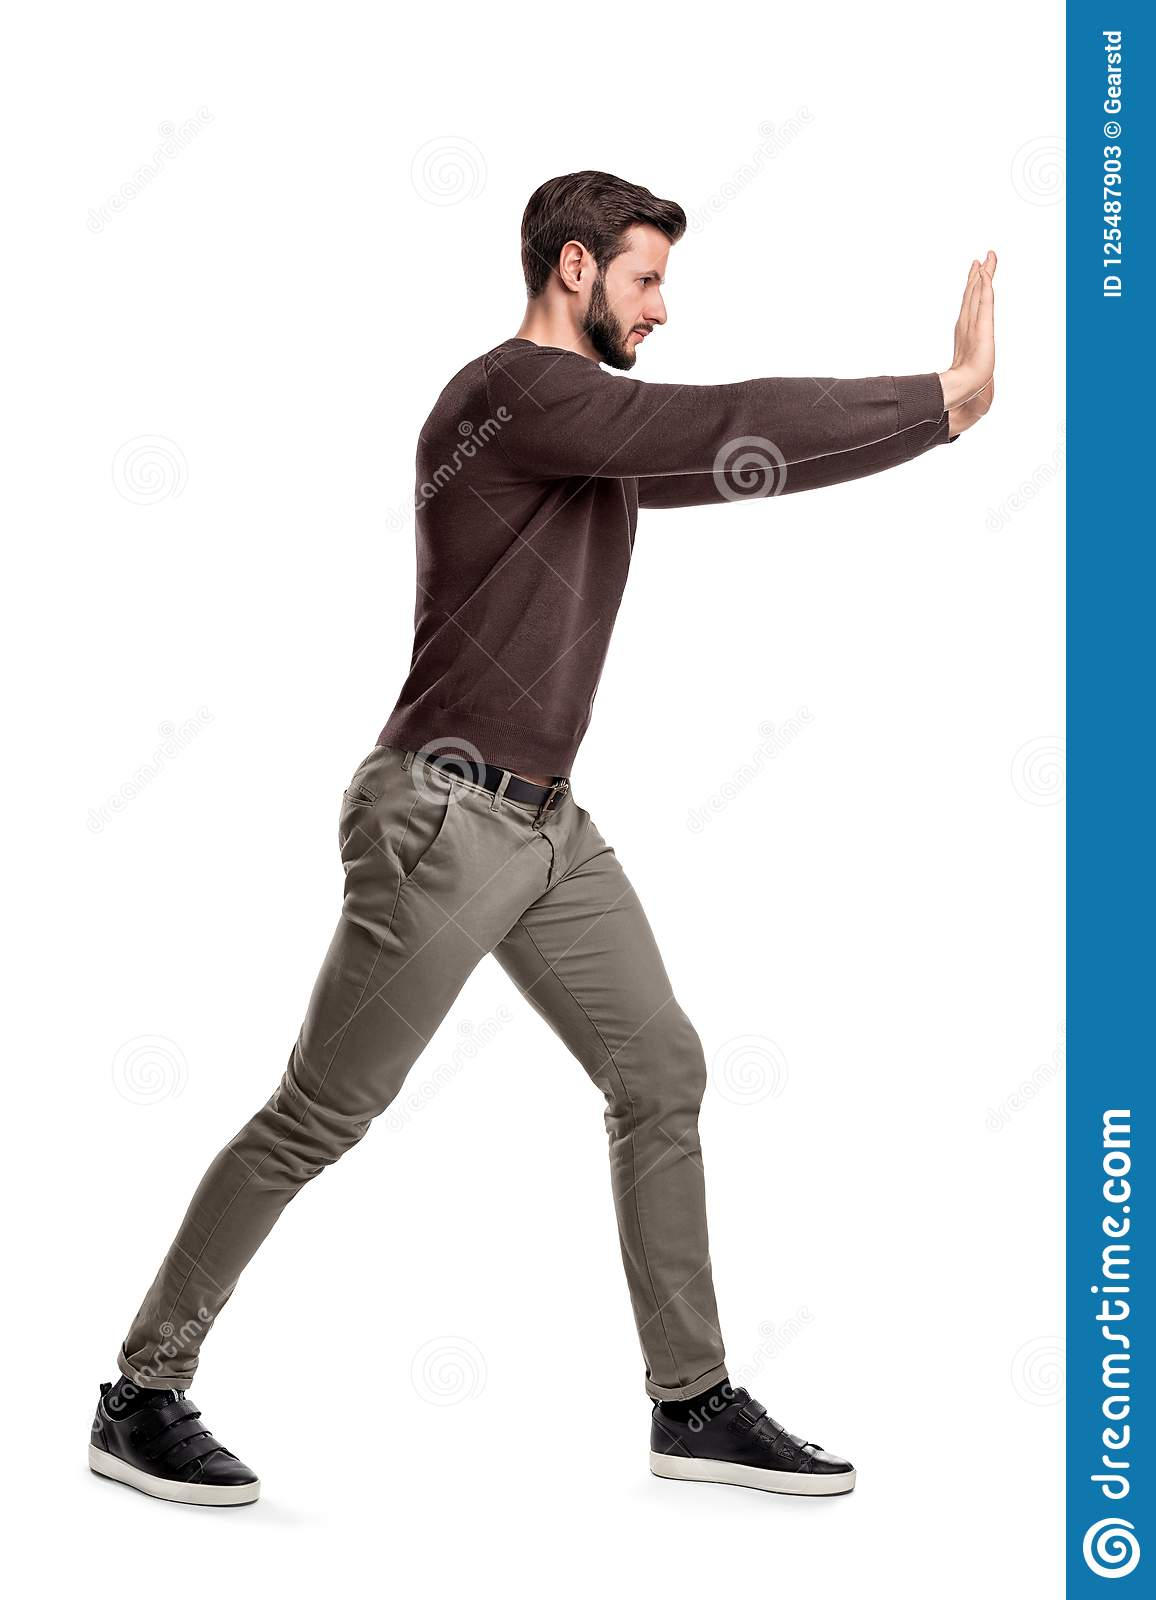 A bearded man in casual clothes tries to push a heavy object with both arms with one leg put in front for balance.